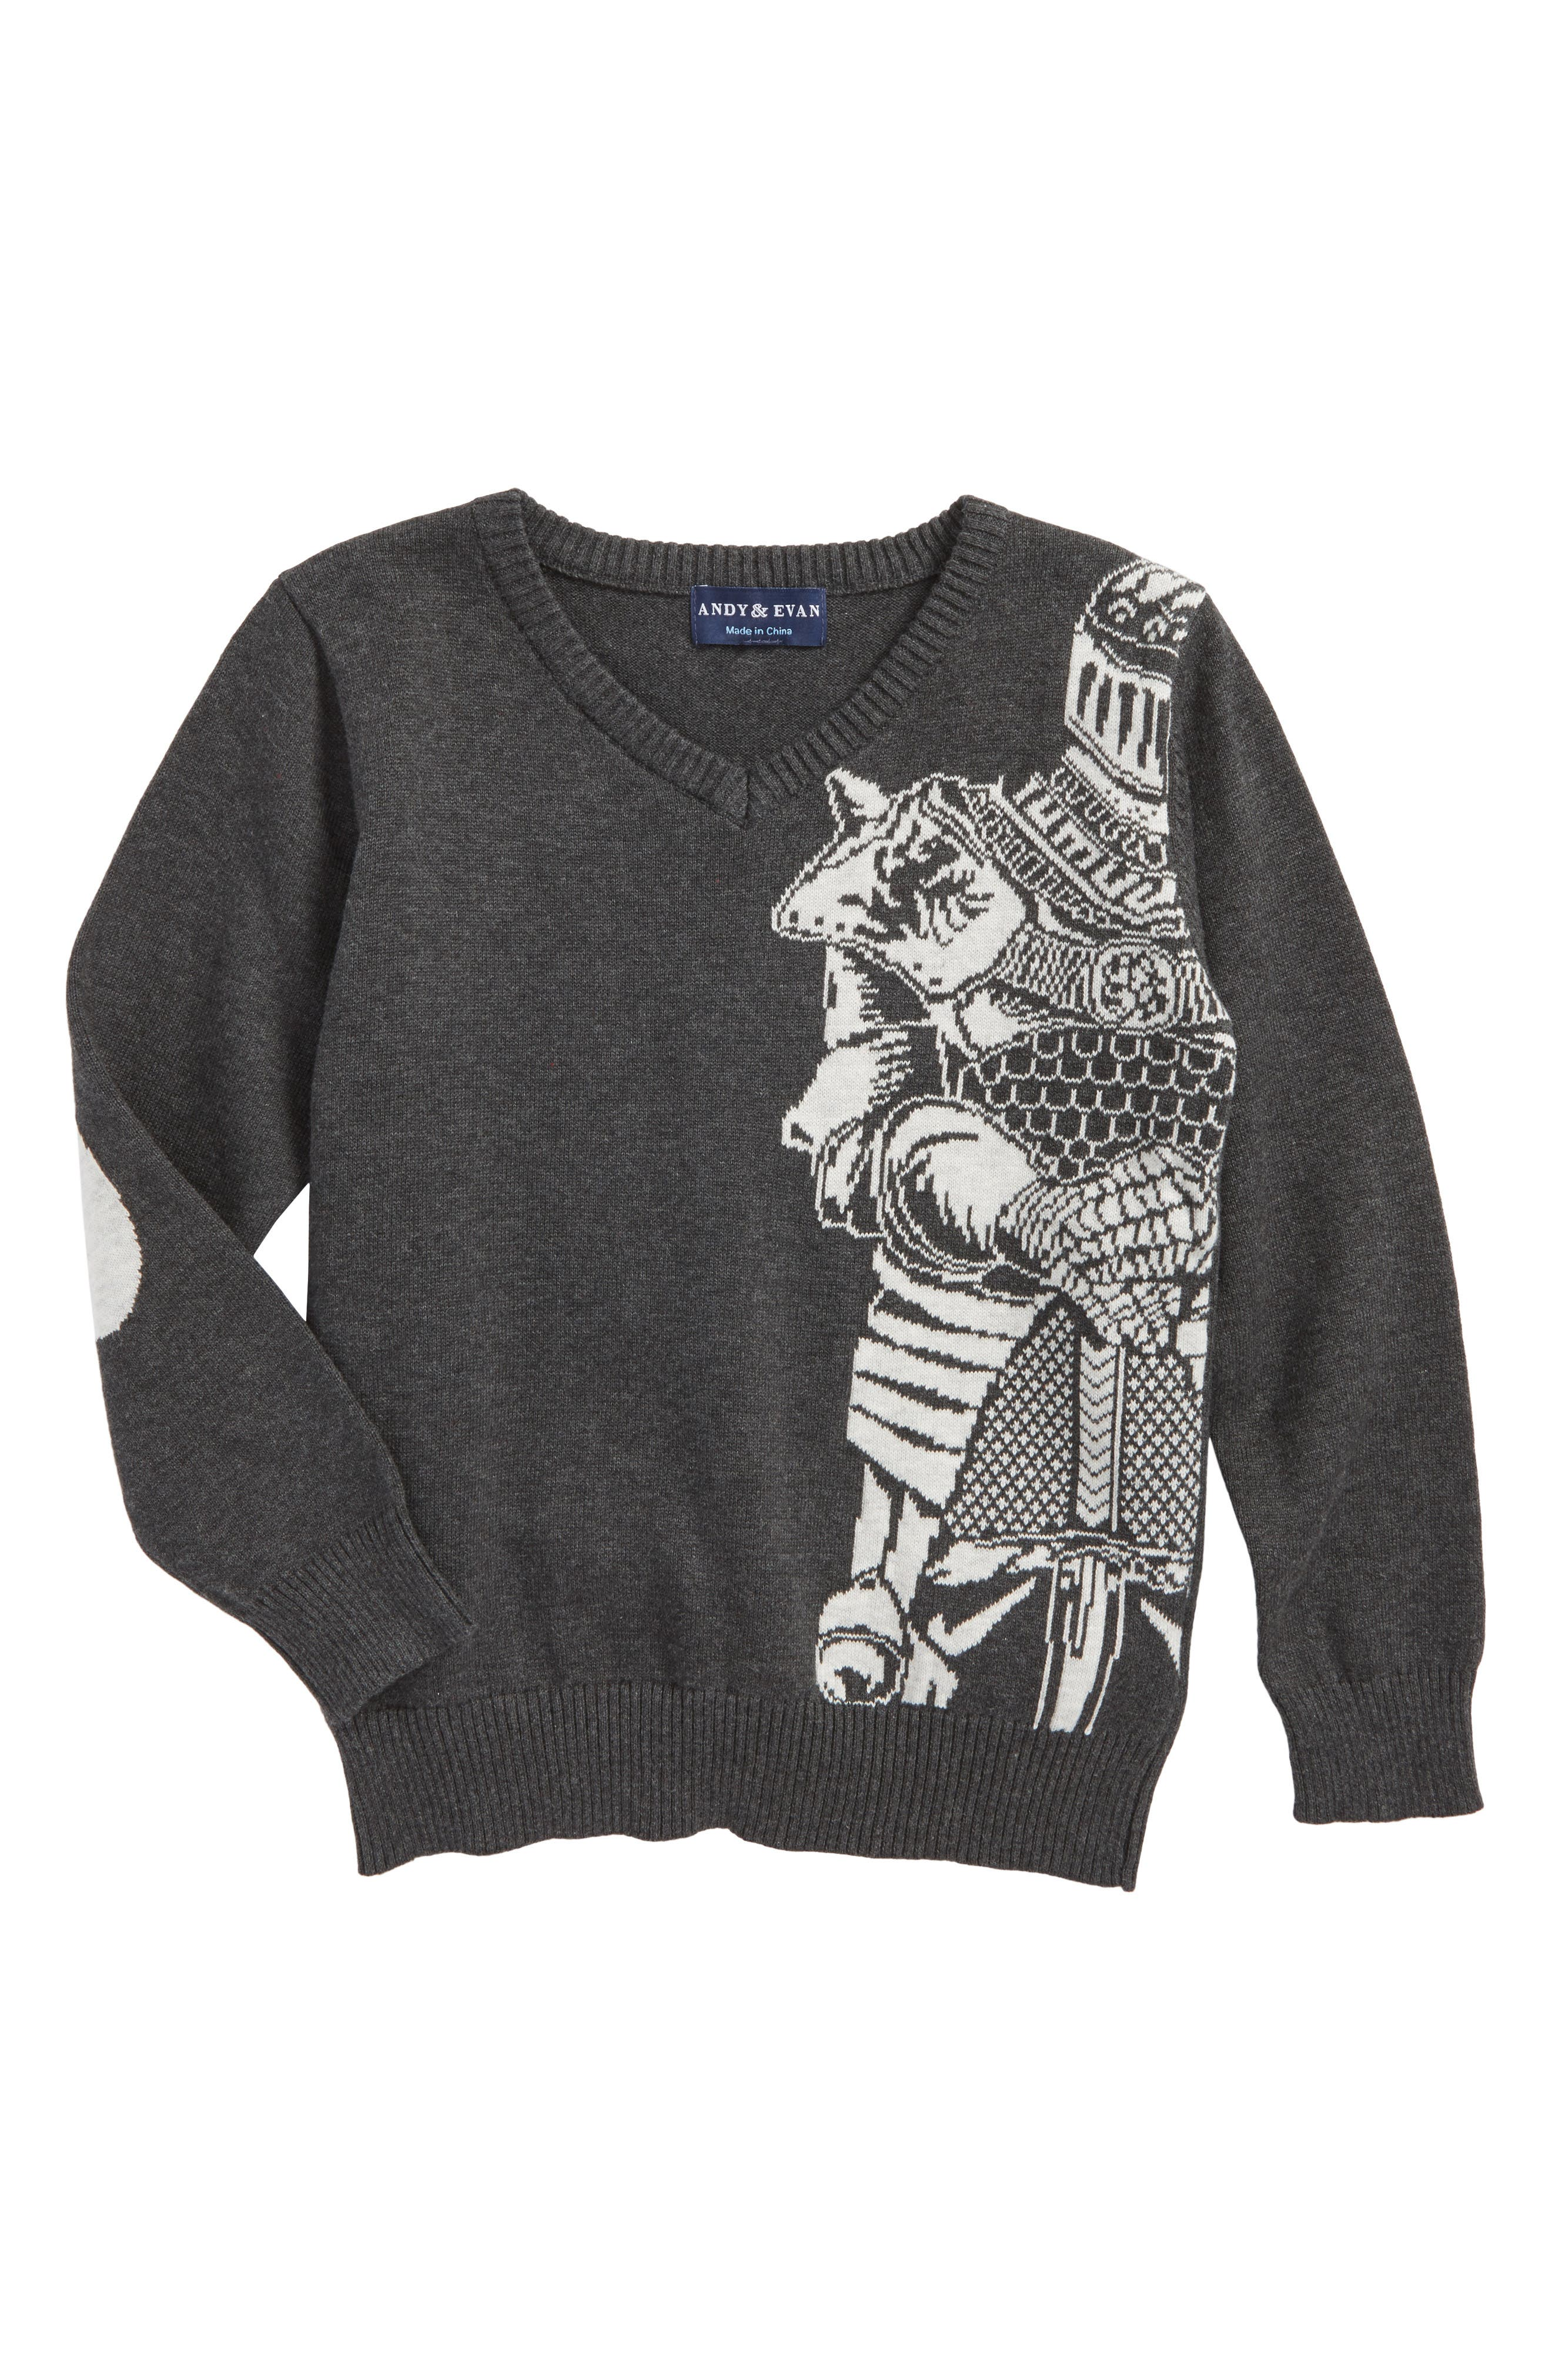 Main Image - Andy & Evan Knight Intarsia Sweater (Toddler Boys & Little Boys)